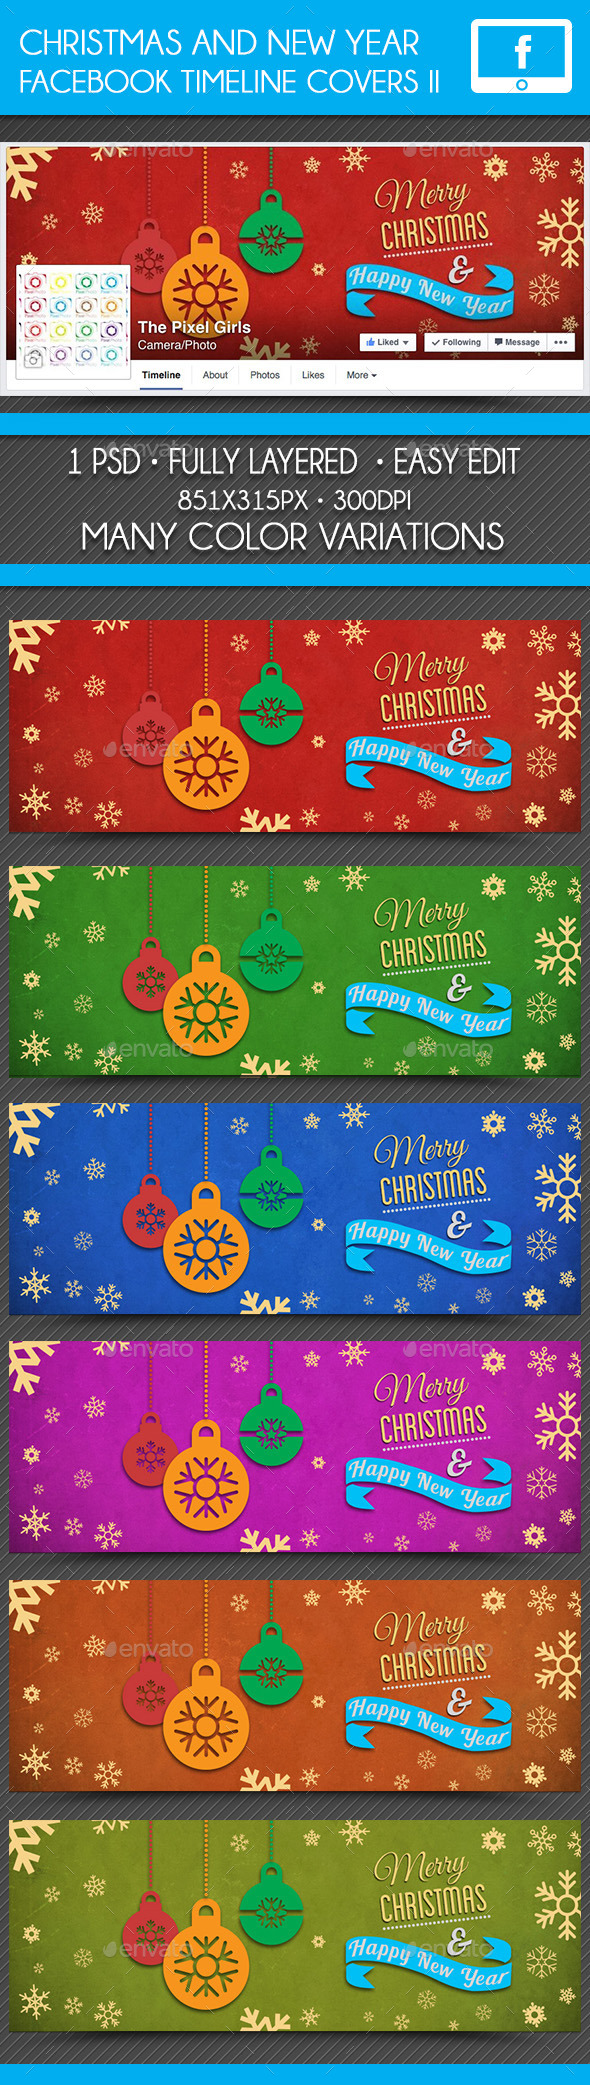 Christmas & New Year Facebook Timeline Cover II - Facebook Timeline Covers Social Media